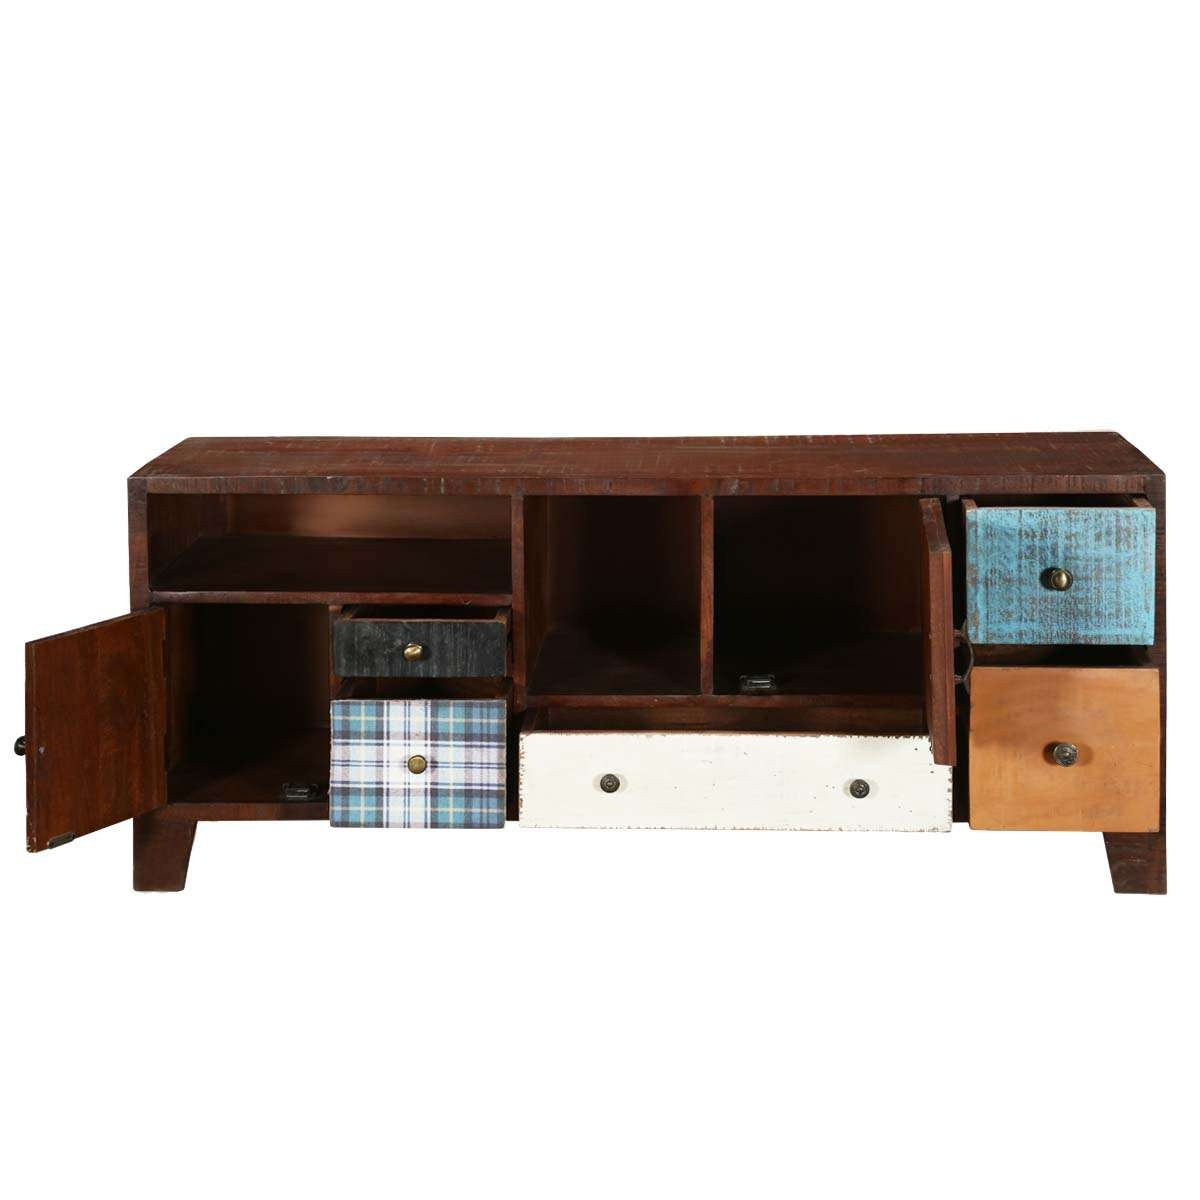 Highest Rated Pop Up Tv Stand For Bedroom, Wooden Wardrobe Modern Within Pop Up Tv Stands (View 11 of 20)